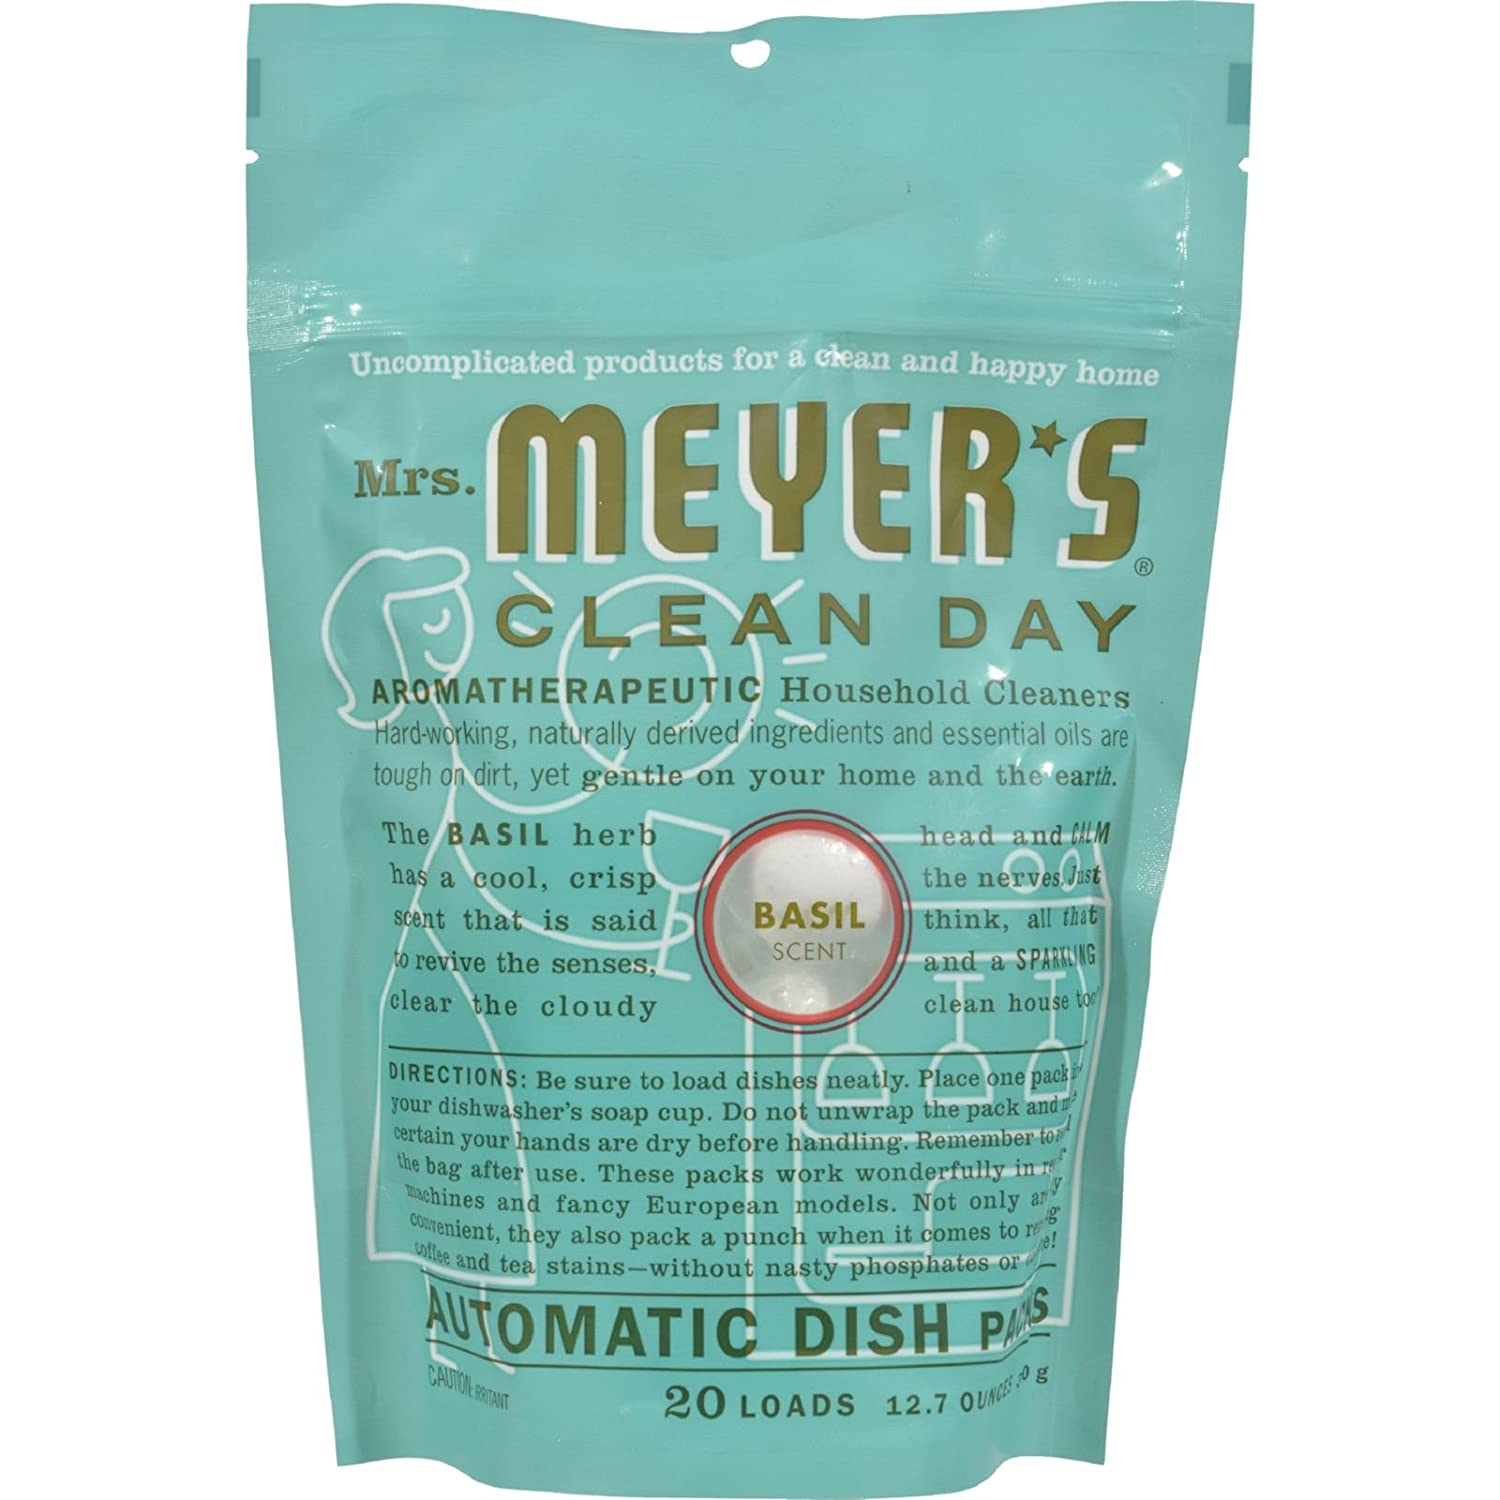 Mrs. Meyers Clean Day Automatic Dish Contains Packs 20 Loads with Basil Scent, 12.7 Oz, 12.7 Ounce